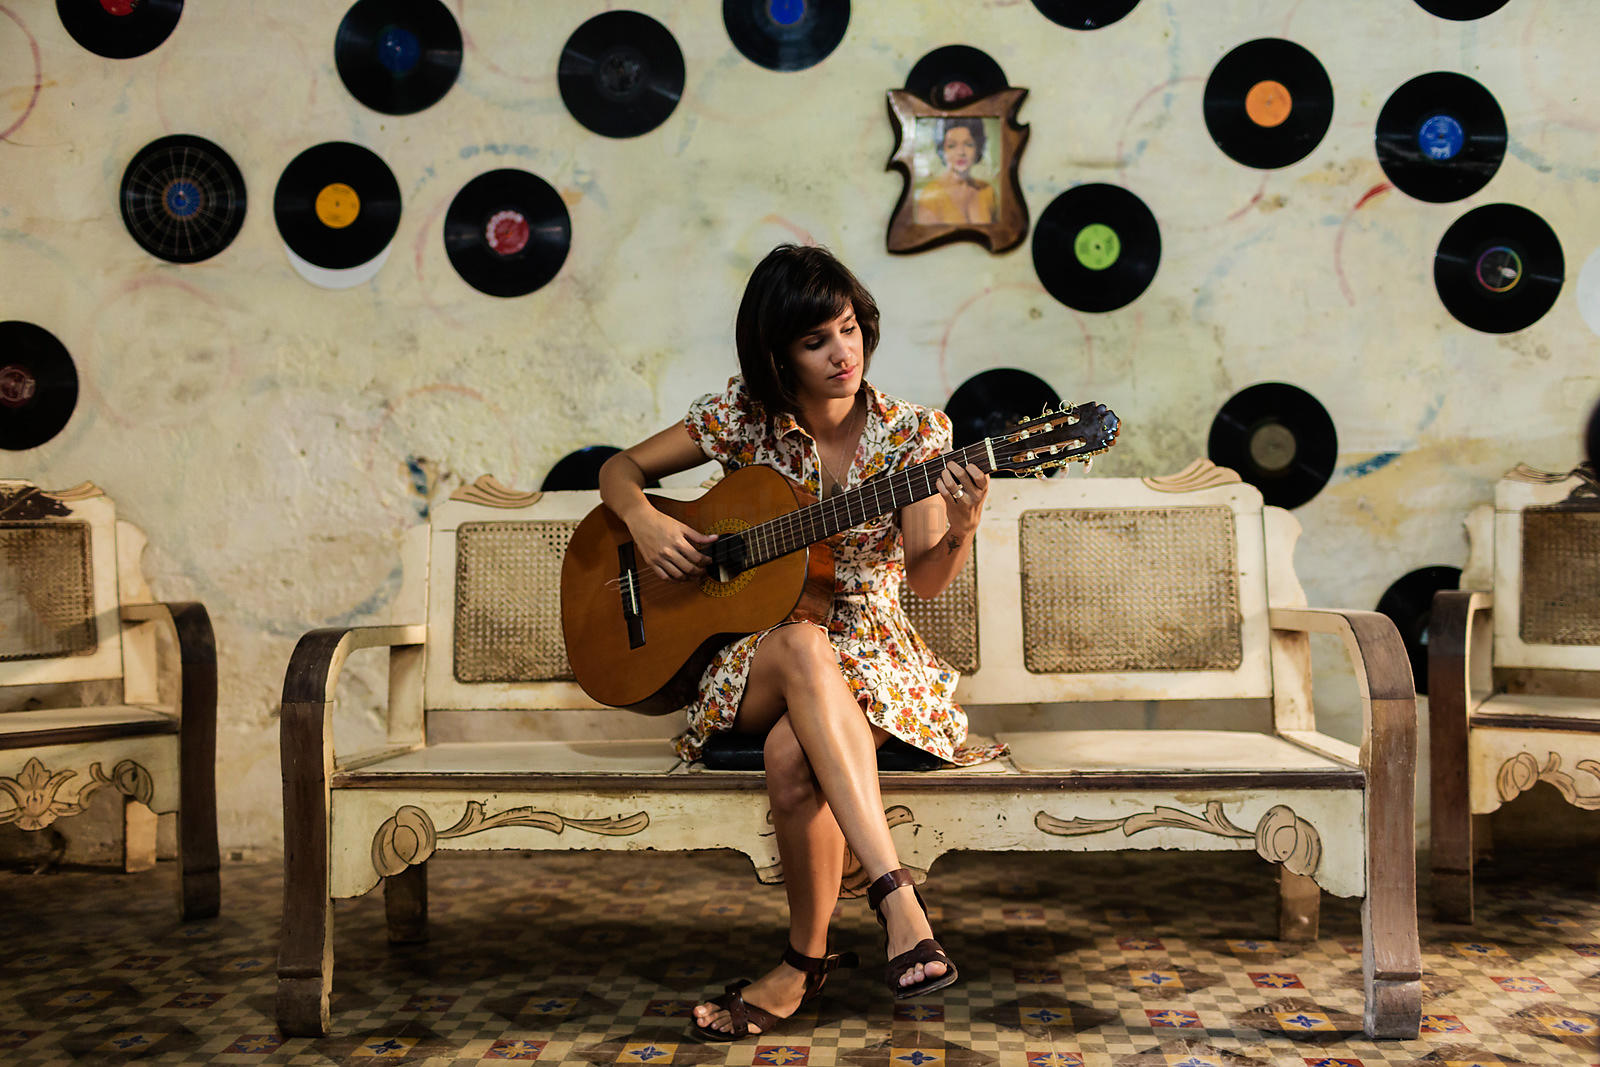 Musician Playing Guitar Sitting on Bench in Front of Wall with Hanging Records